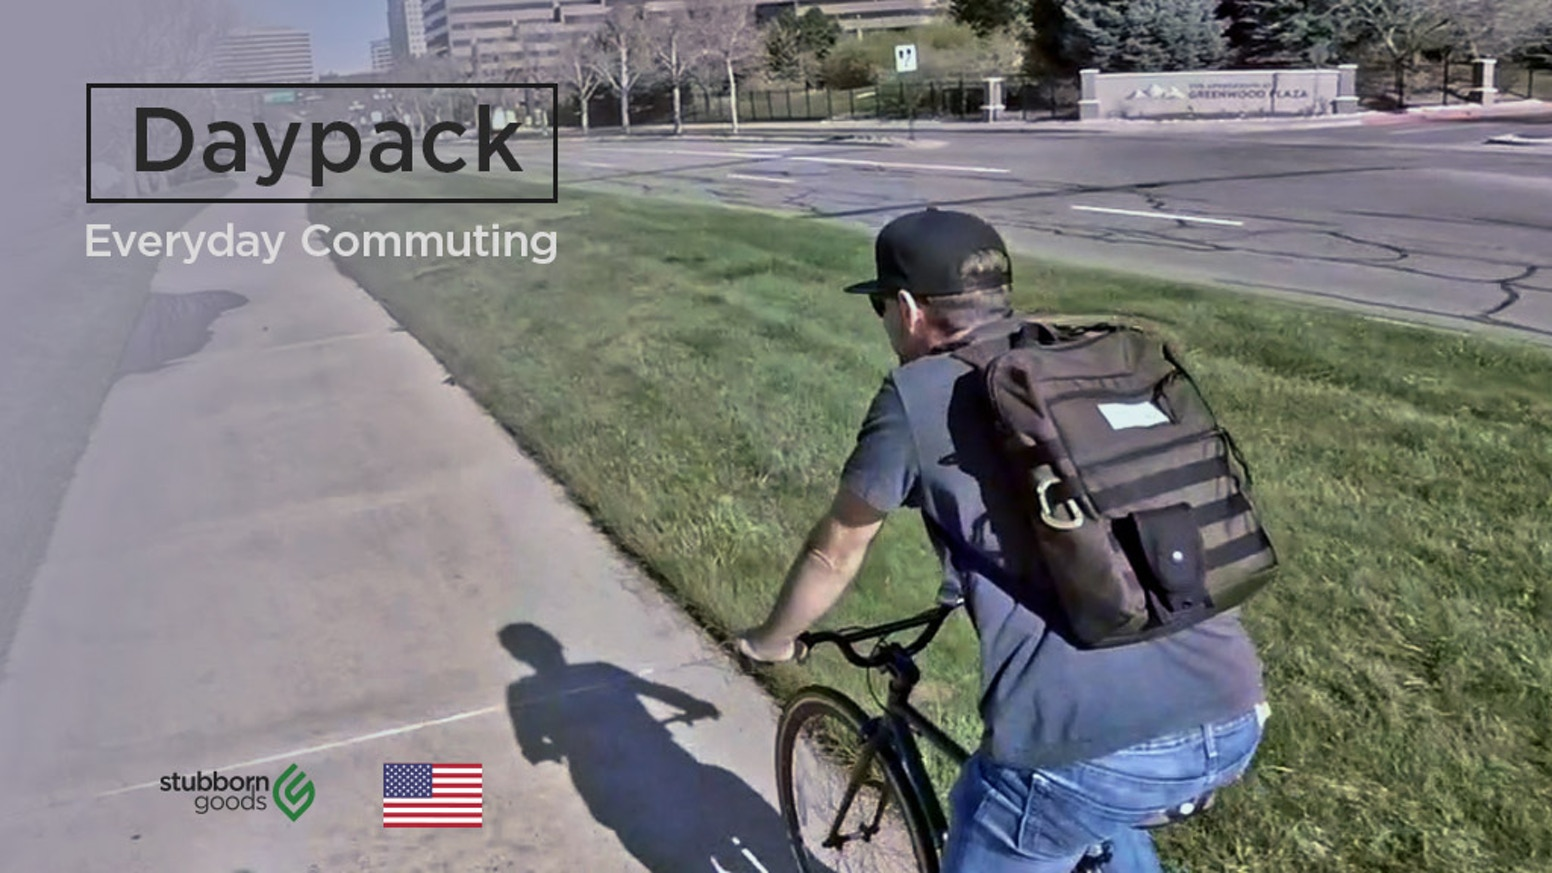 The Daypack is made to carry everything you need during your day. Simple, solid, functional